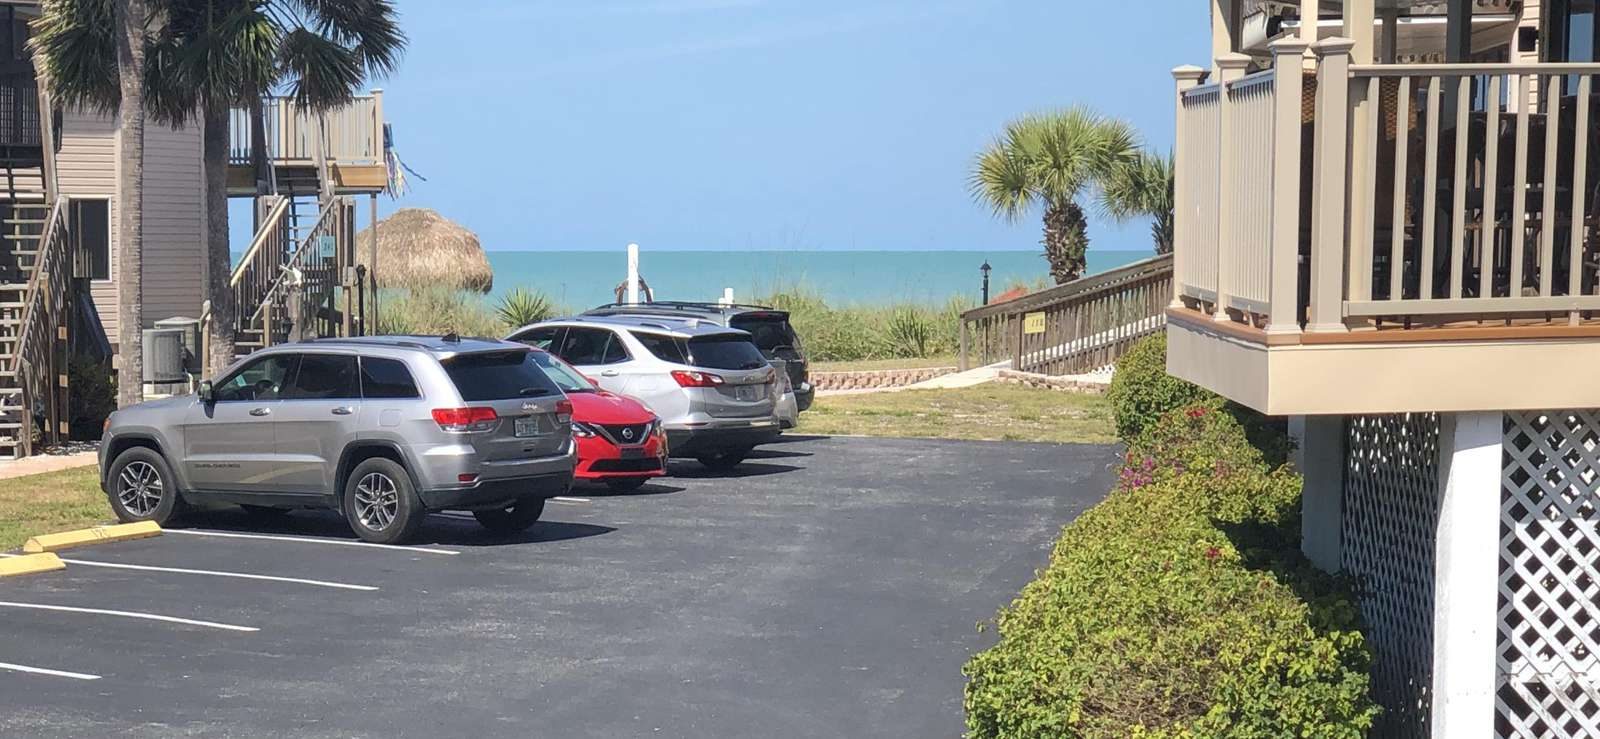 Ocean View from Parking Lot Outside Unit